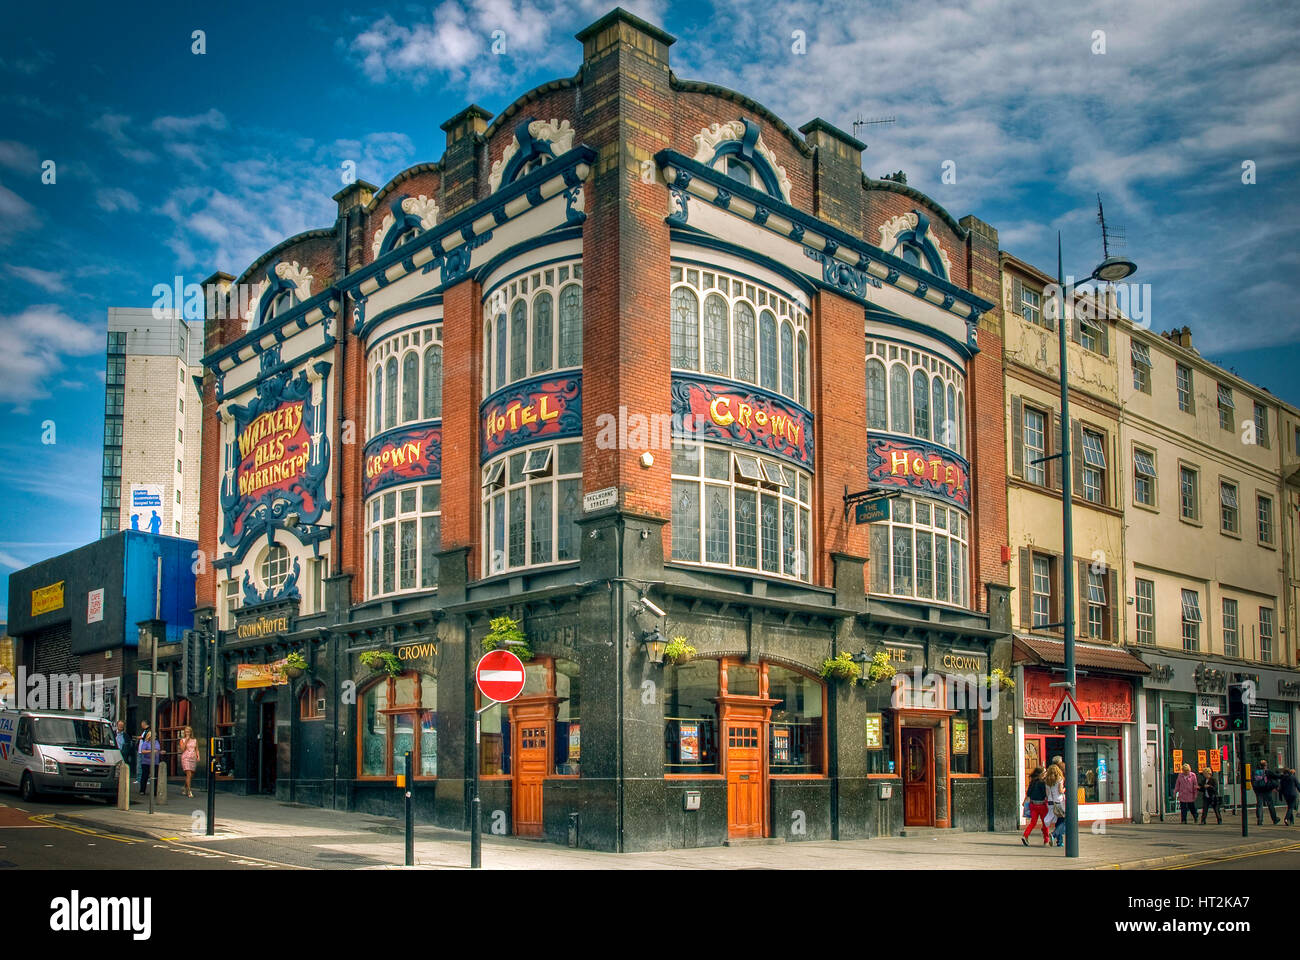 The CRown public house in Lime street Liverpool. - Stock Image